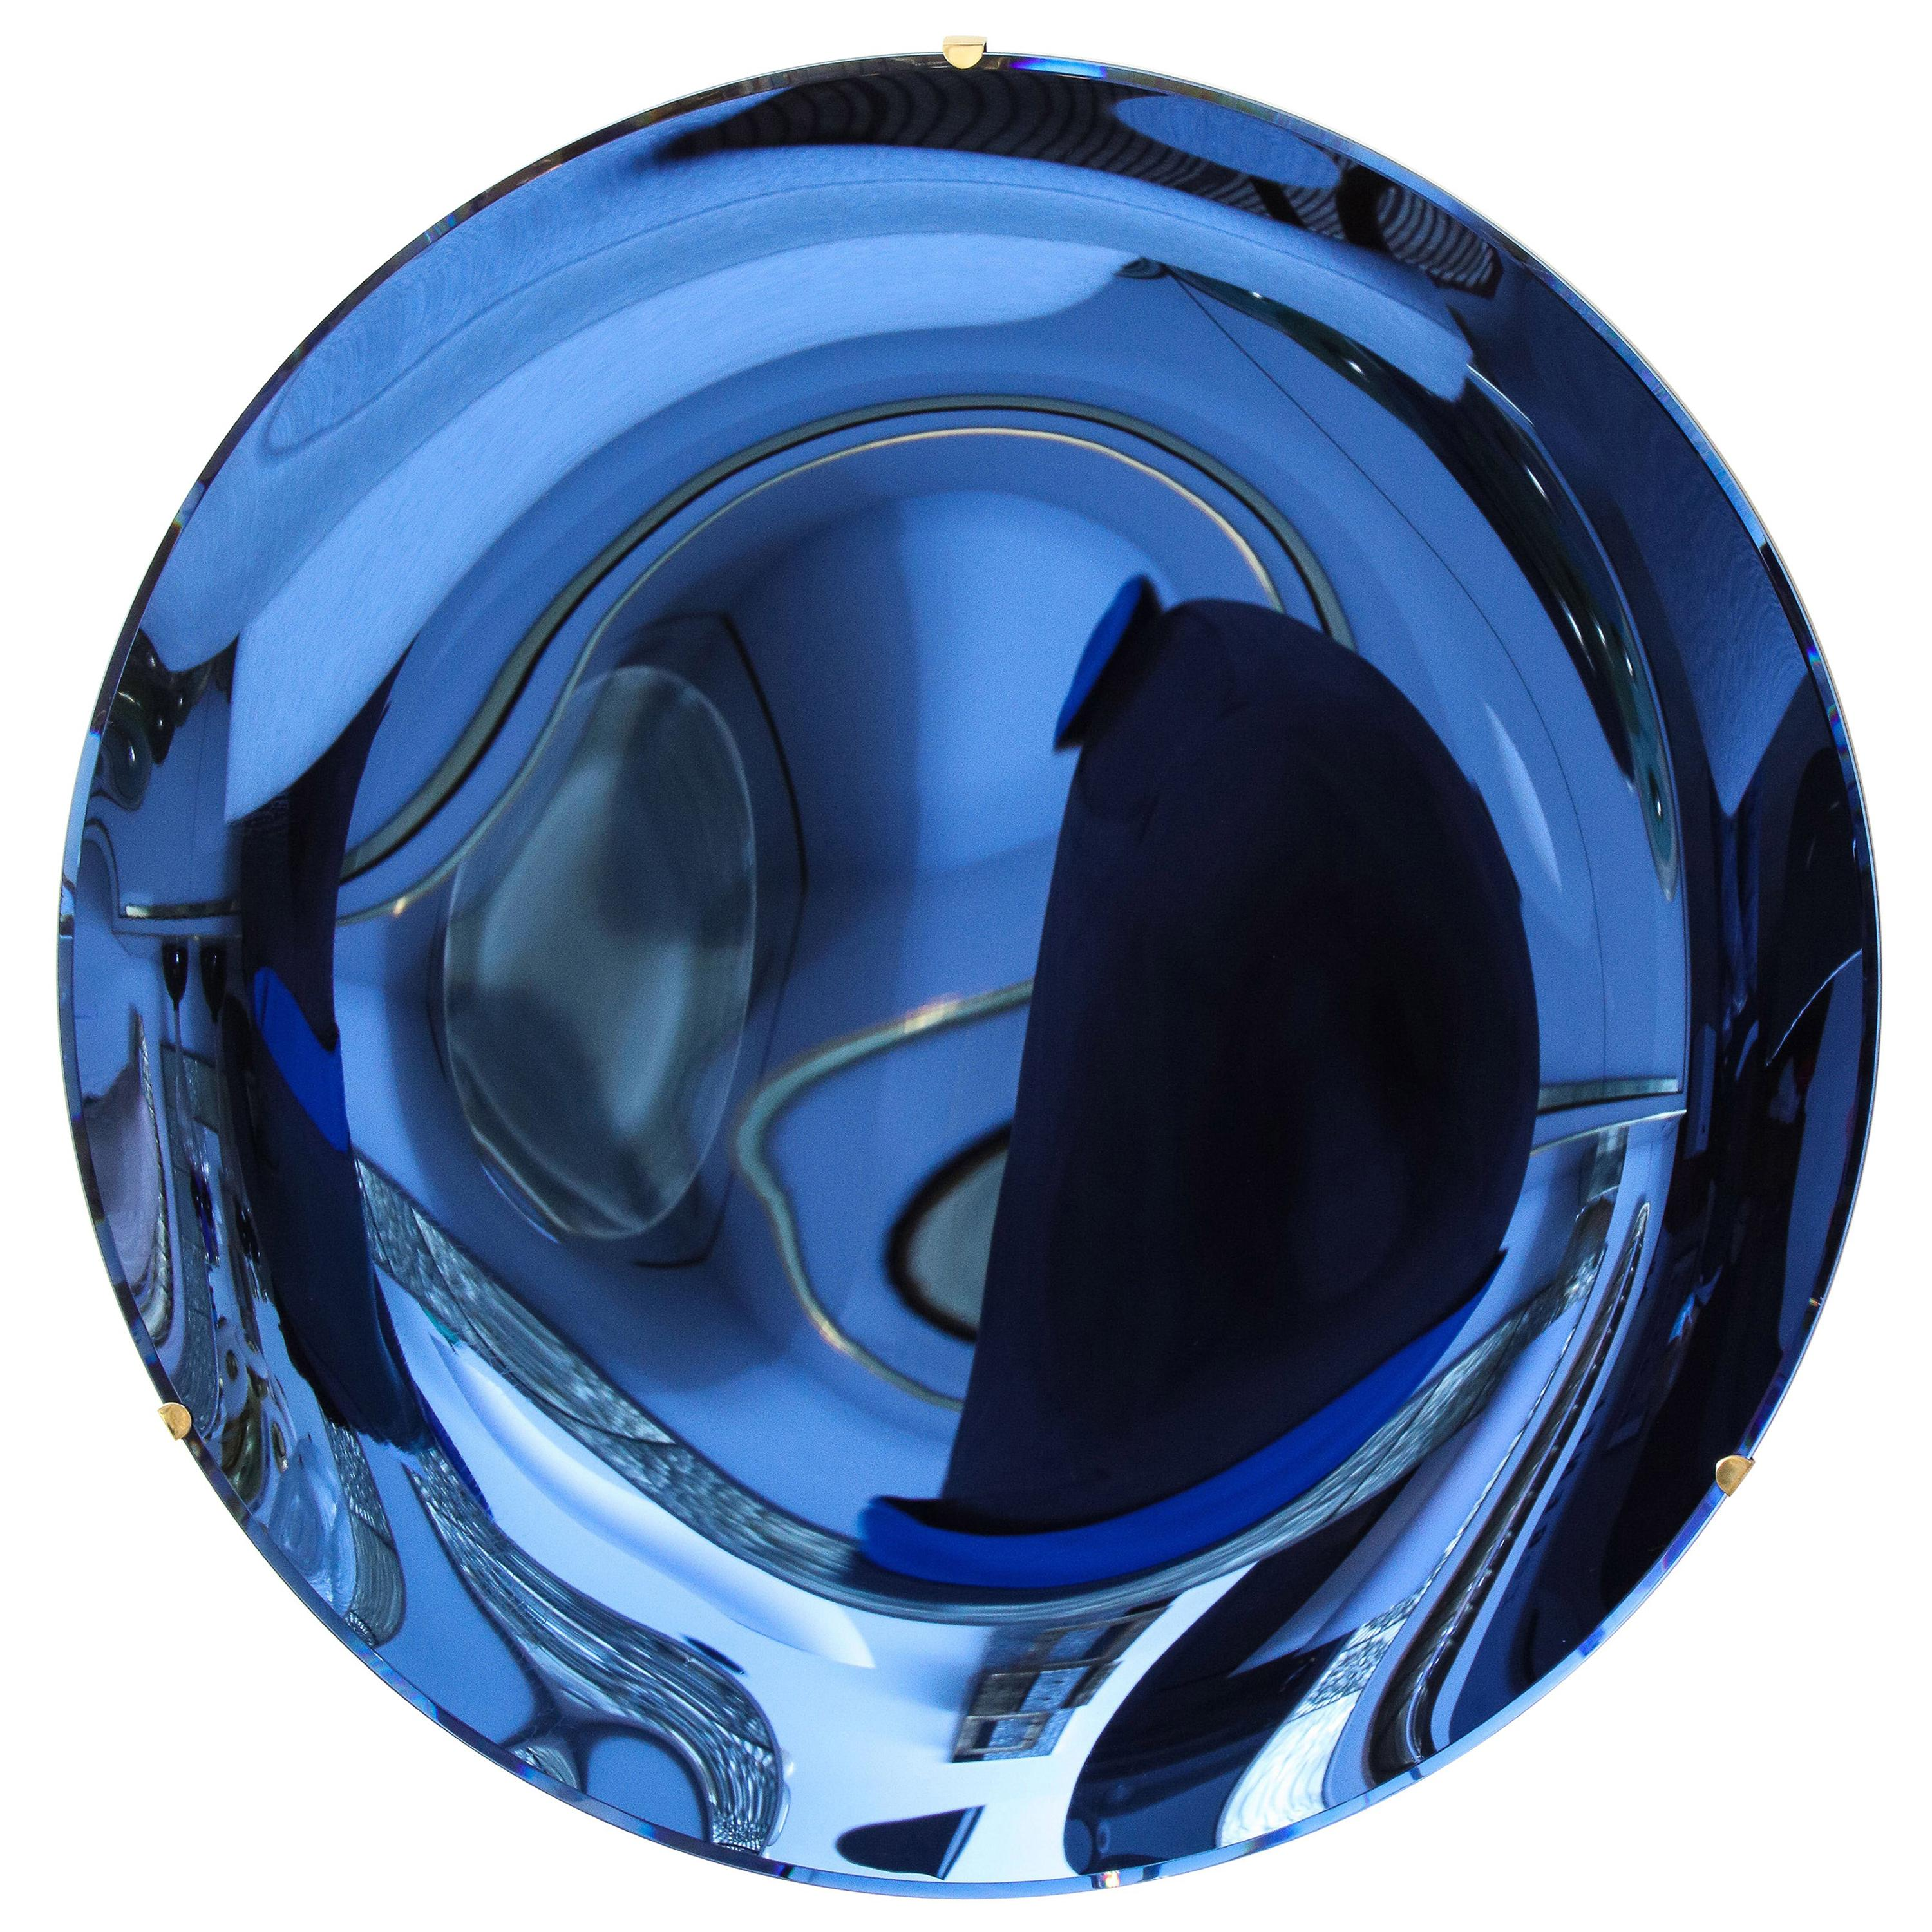 Large Sculptural Round Concave Cobalt Blue Mirror or Wall Sculpture, Italy, 2021